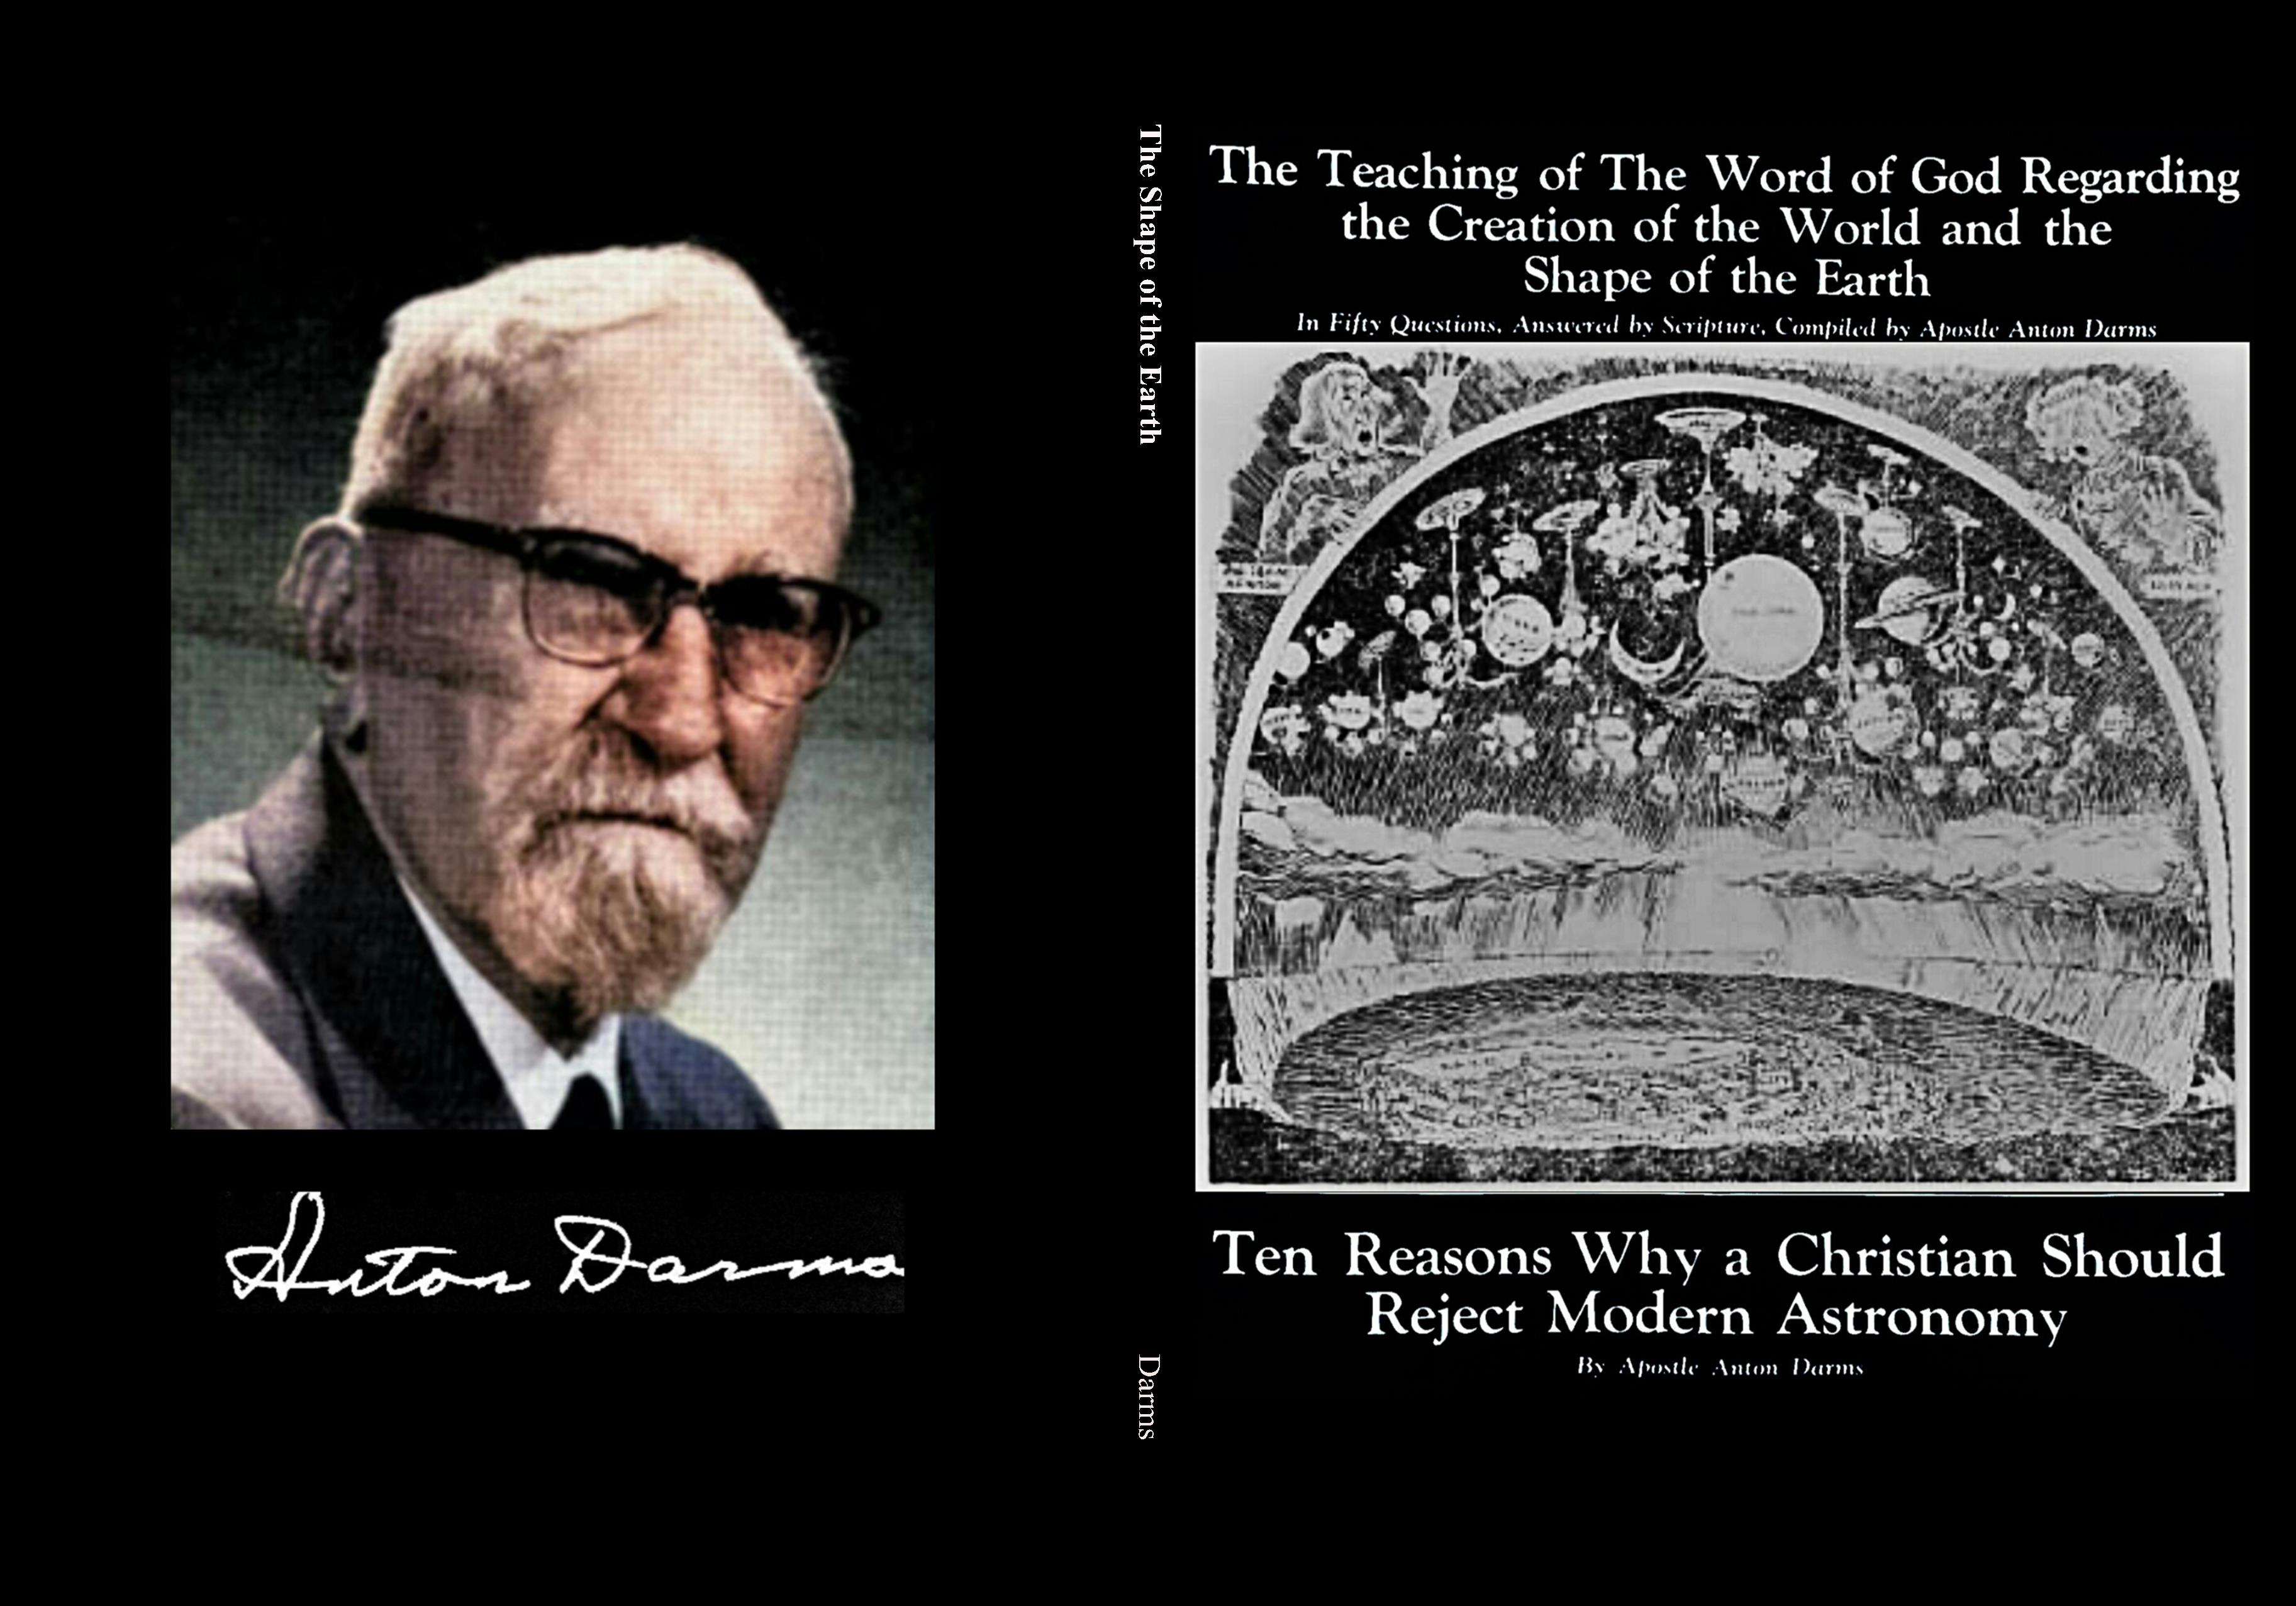 The Teaching on the Shape of the Earth: An Archival of Apostle Darms cover image